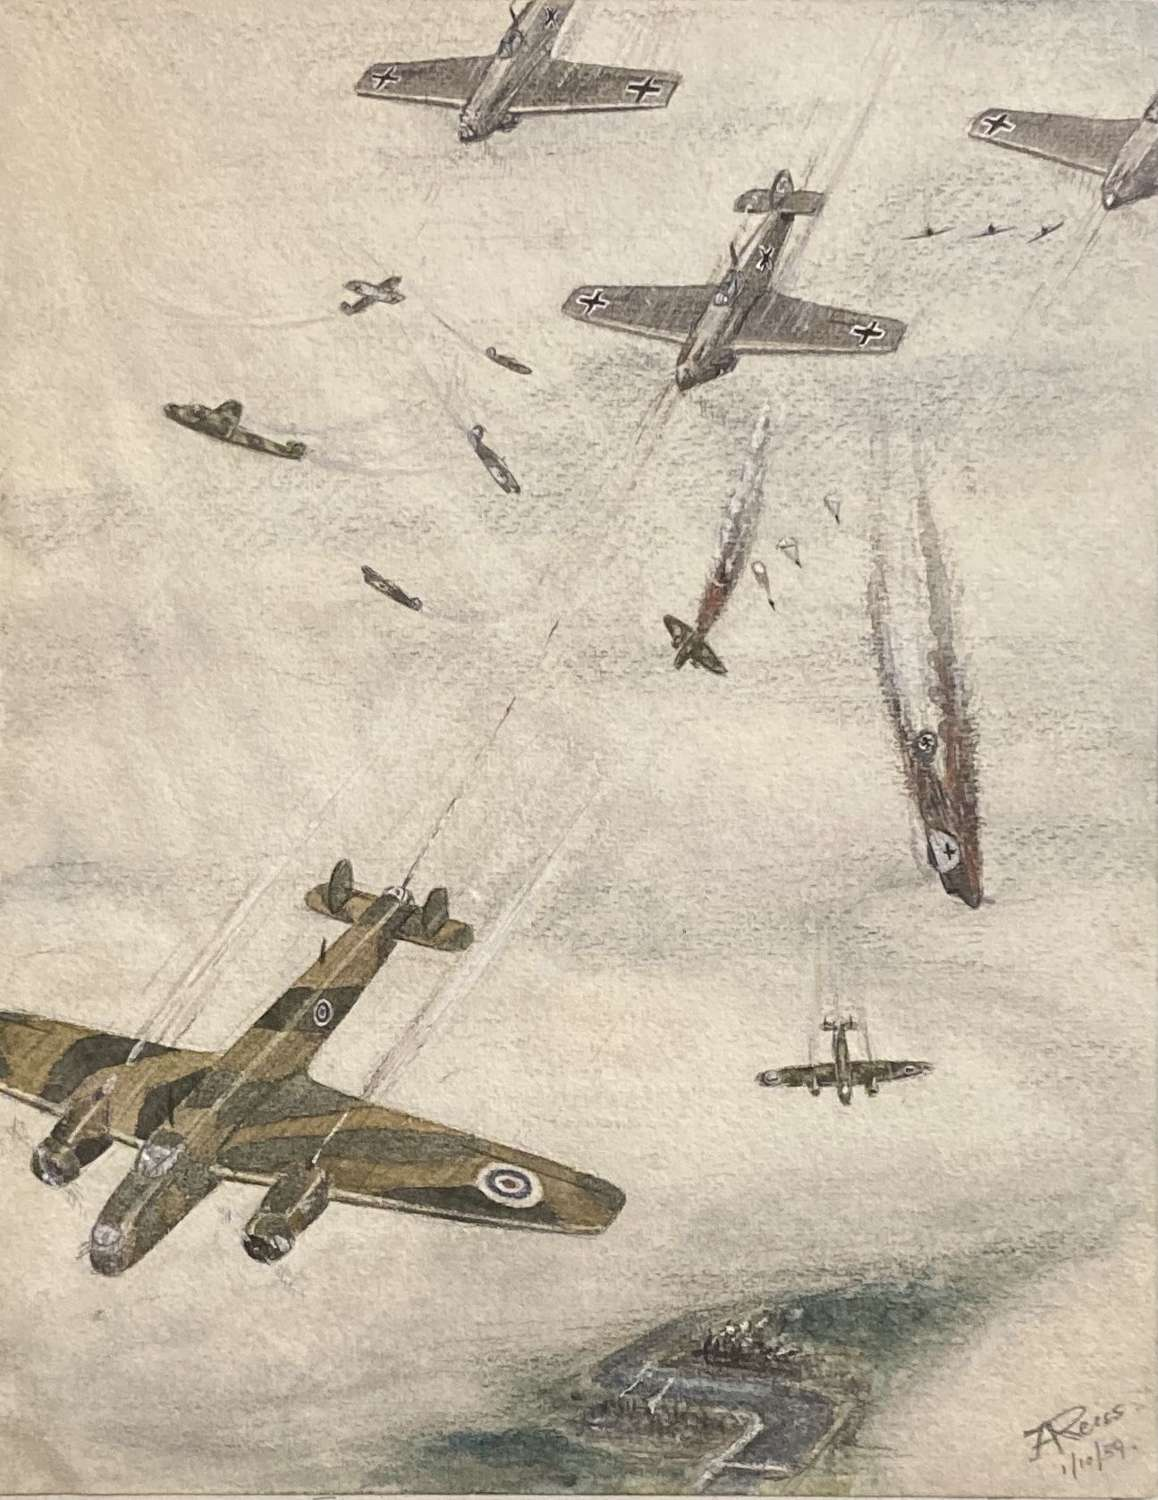 WW2 aerial combat drawing by Capt J A Reiss dated 1st October 1939